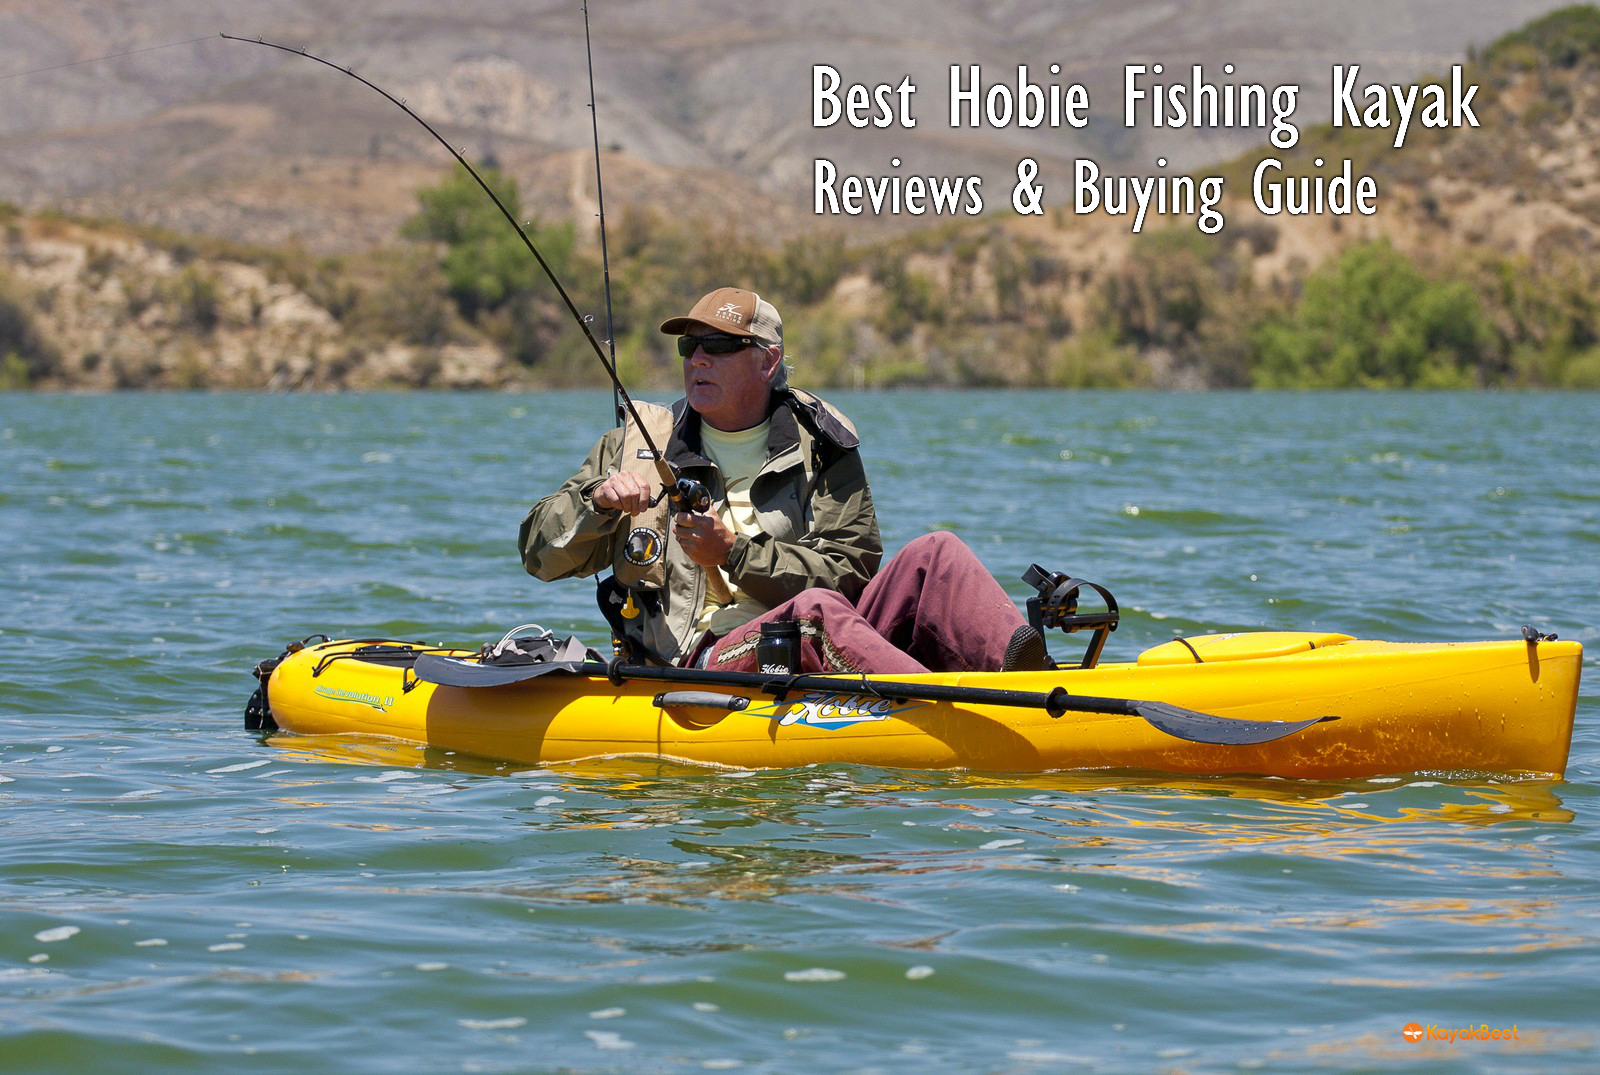 Best hobie fishing kayaks 2018 buying guide reviews for Best canoe for fishing